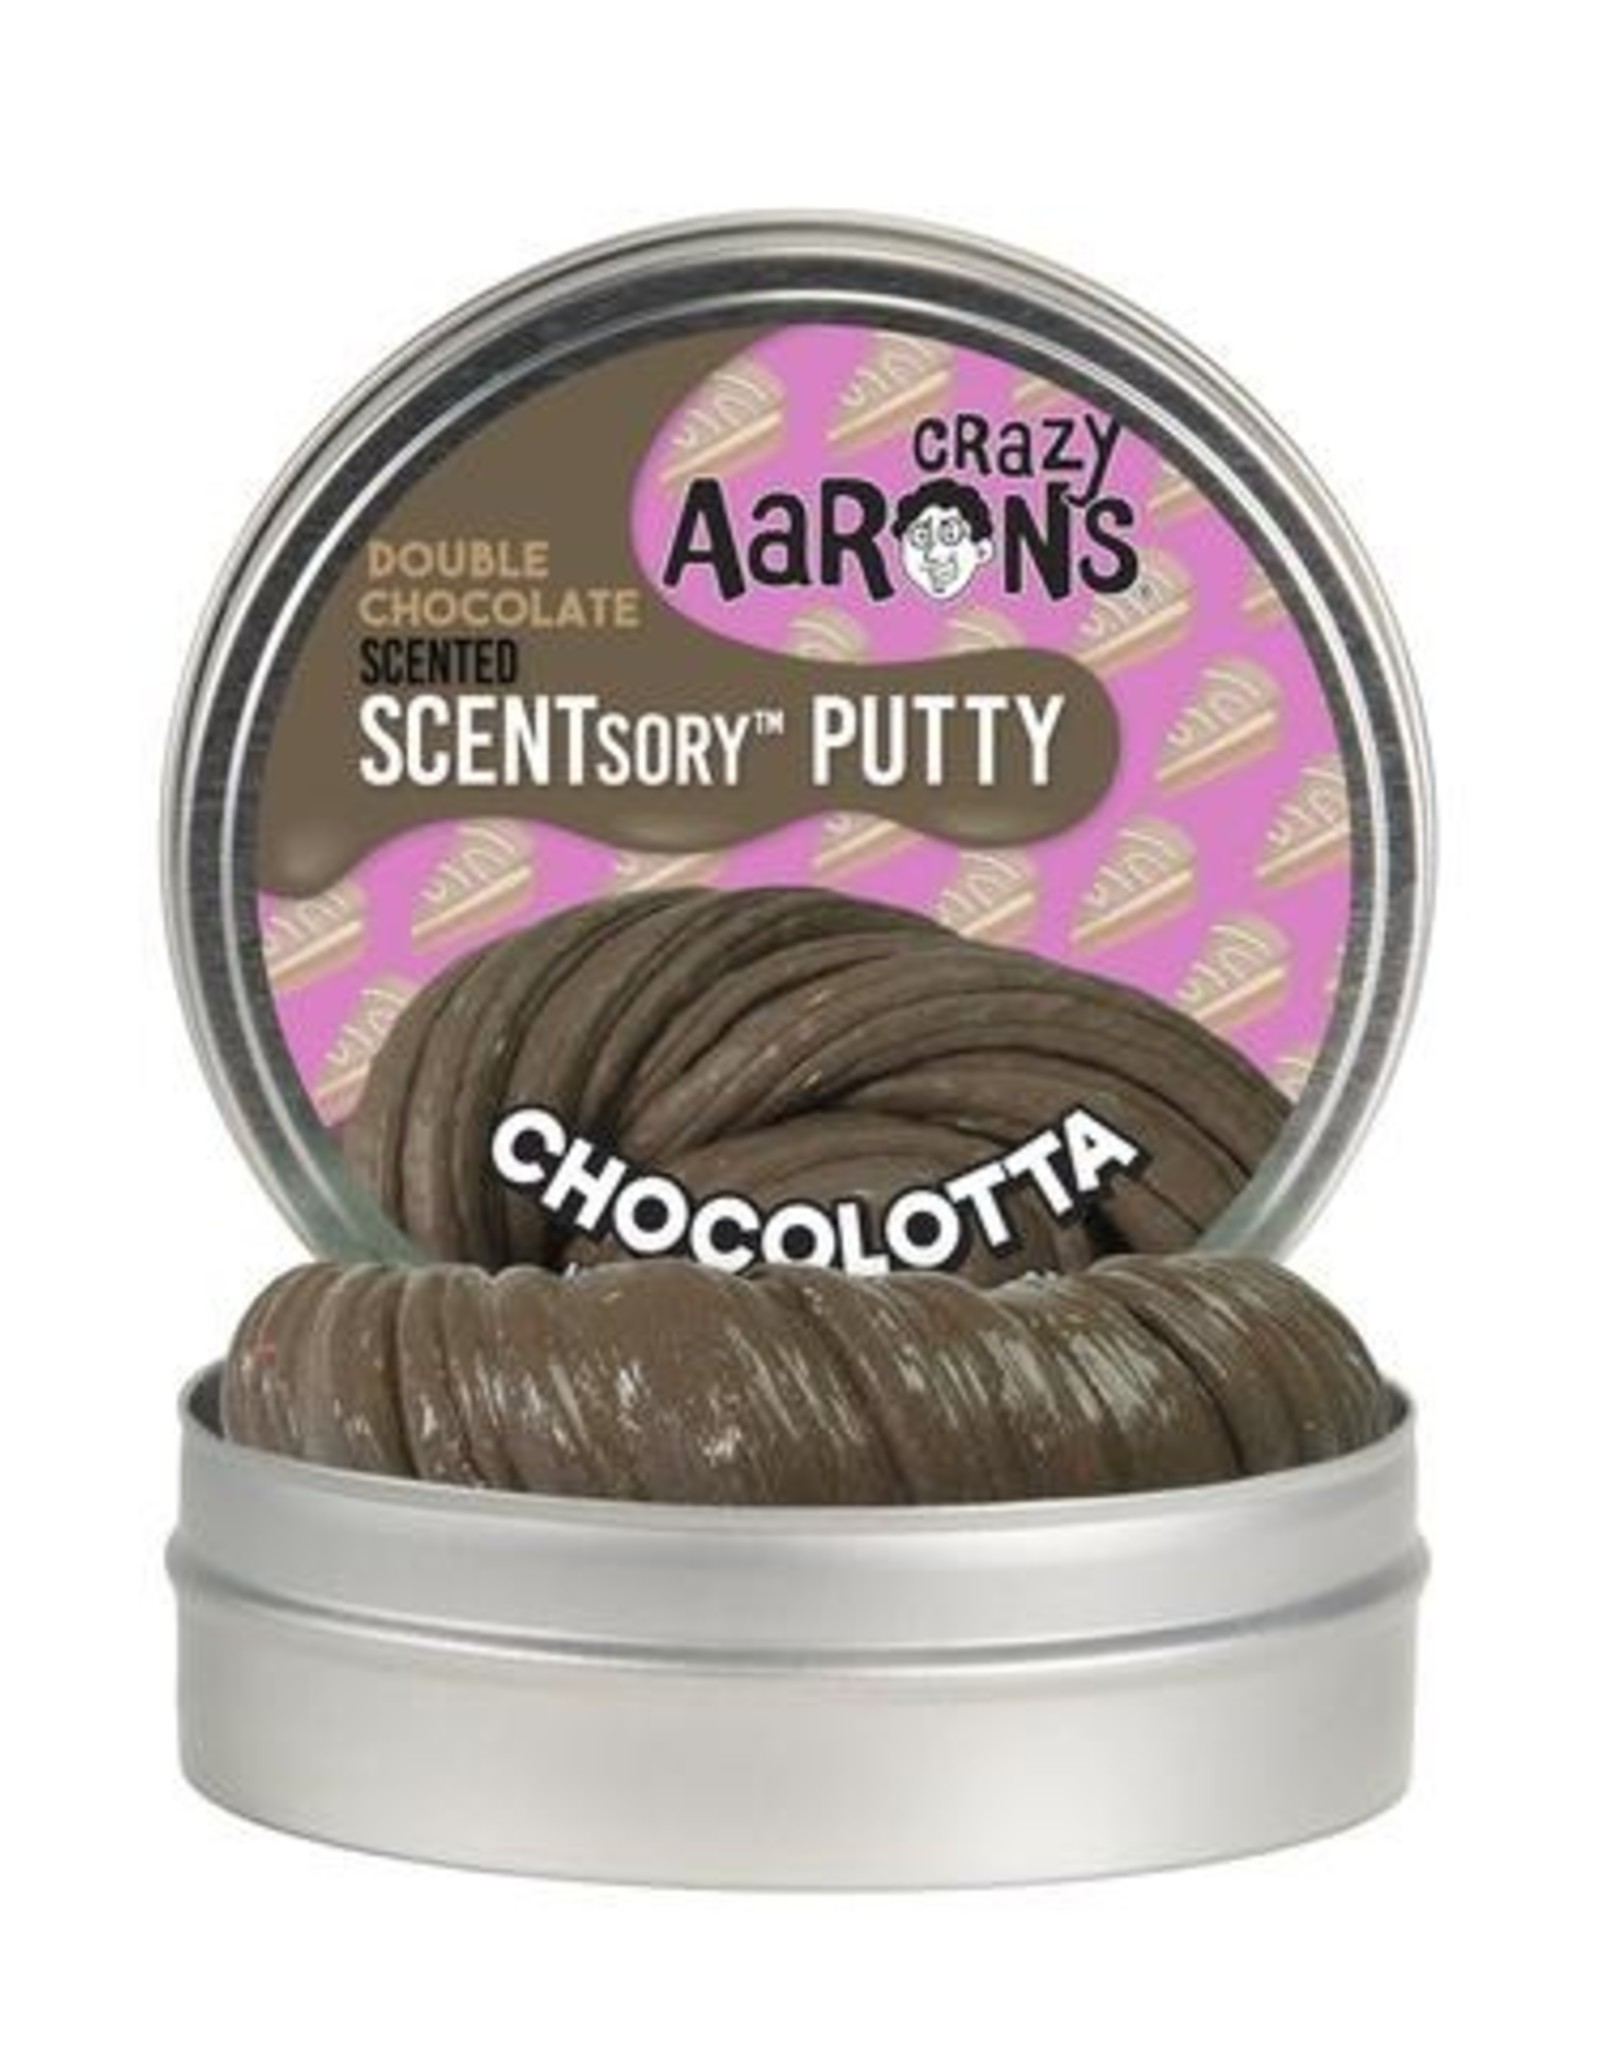 "Crazy Aaron's Thinking Putty Crazy Aaron's SCENTsory Putty 2.75"" Tins"